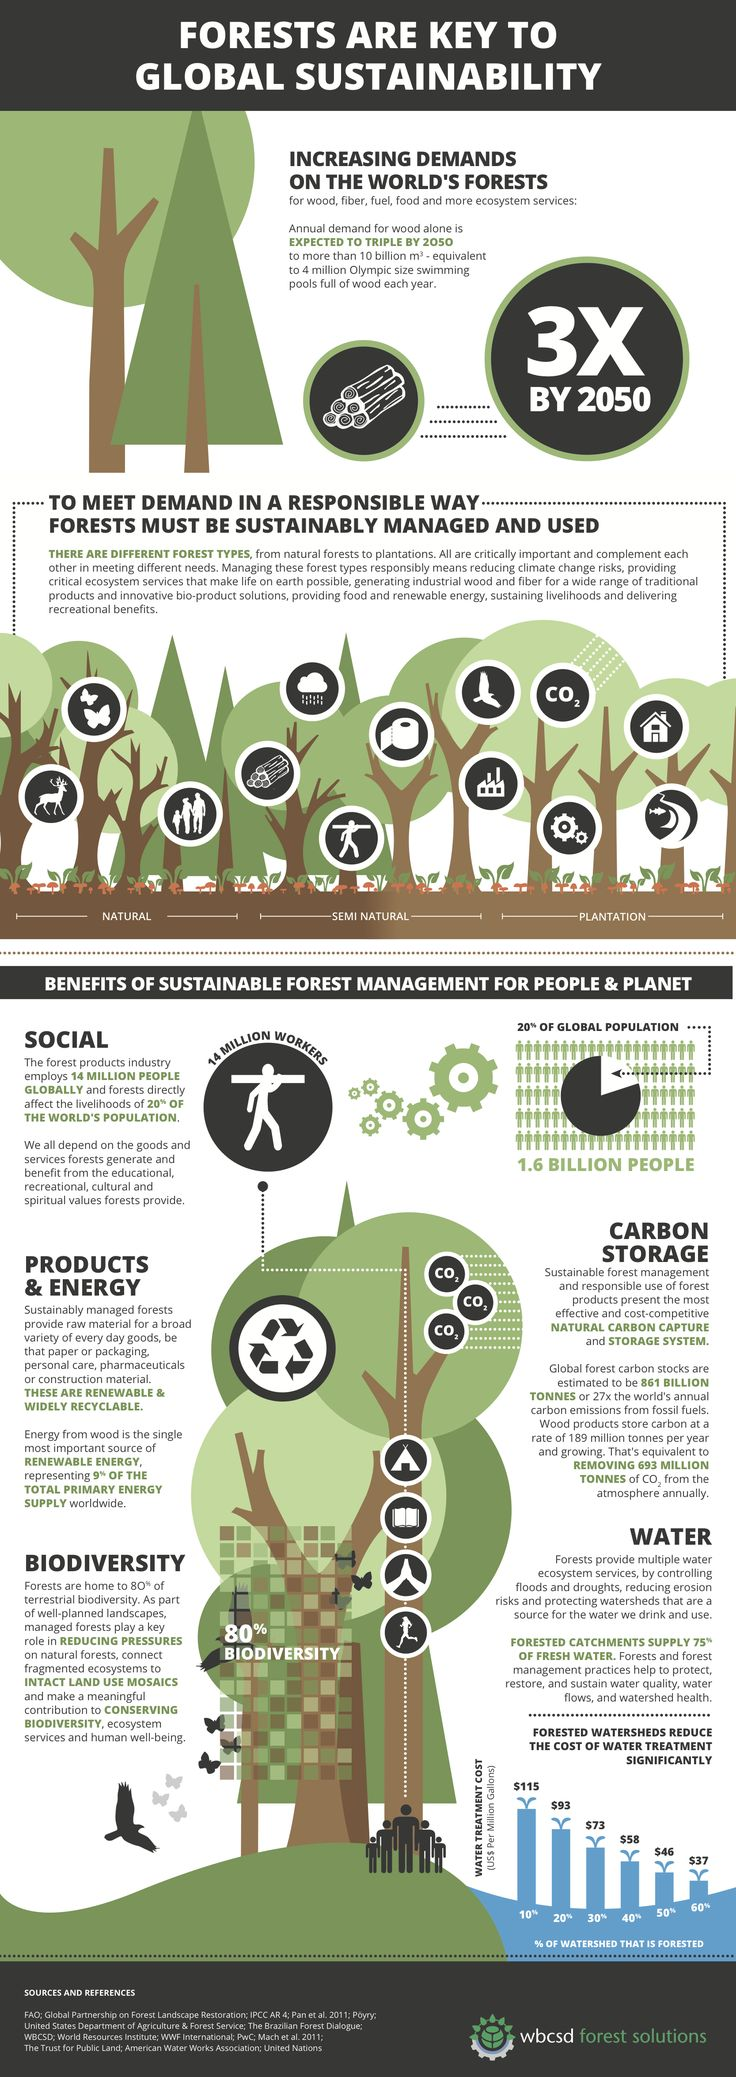 Discover how it is possible to sustainably manage a forest for the benefit of all.  #sustainability #thenavigatorcompany #paper #company #forests #nature #spring